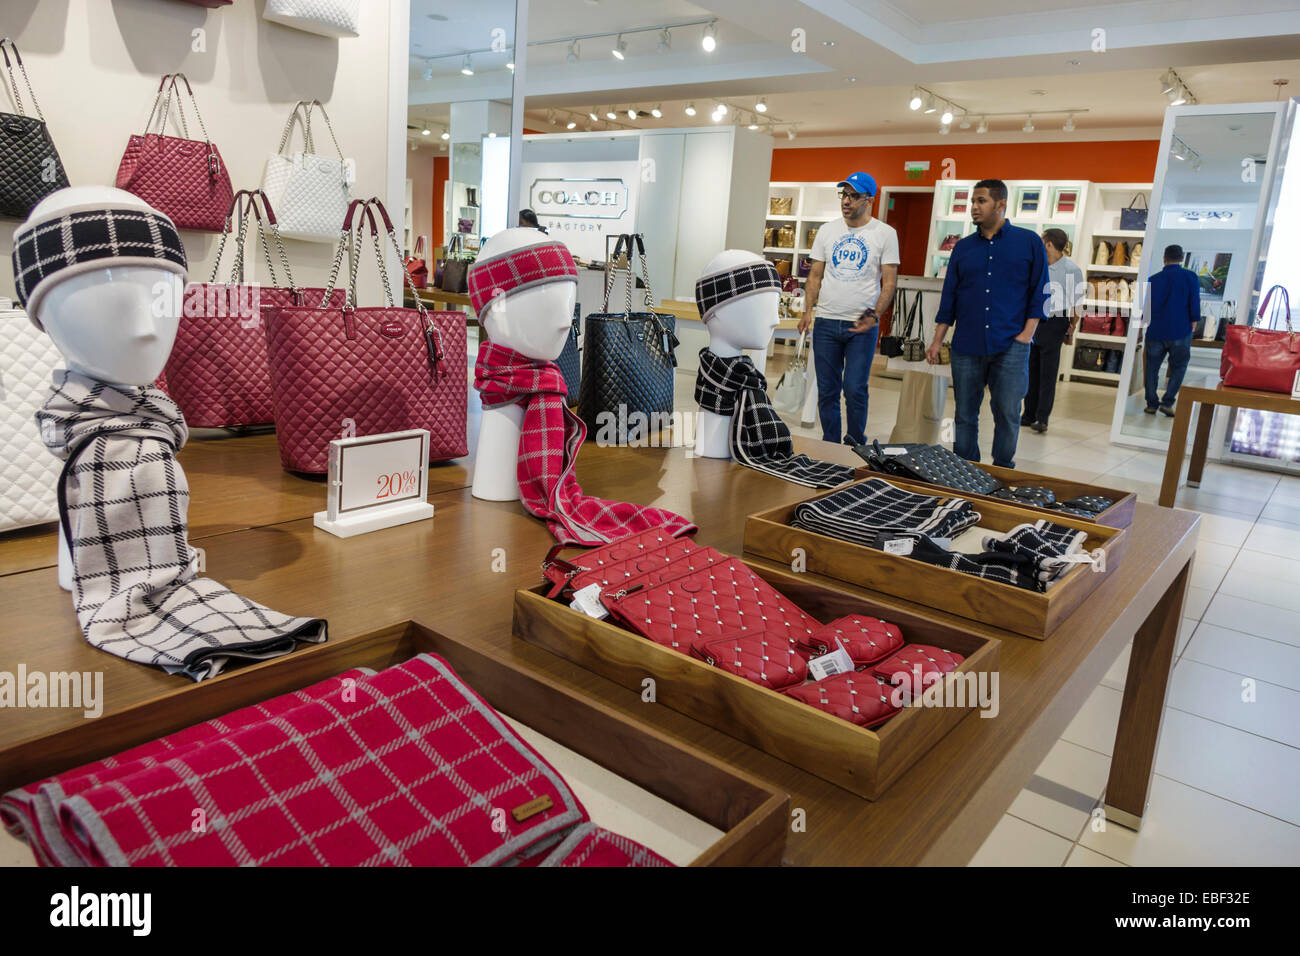 factory coach outlet 0lv0  Orlando Florida Premium Outlets shopping Coach Factory leather goods  display sale women's handbags inside scarves